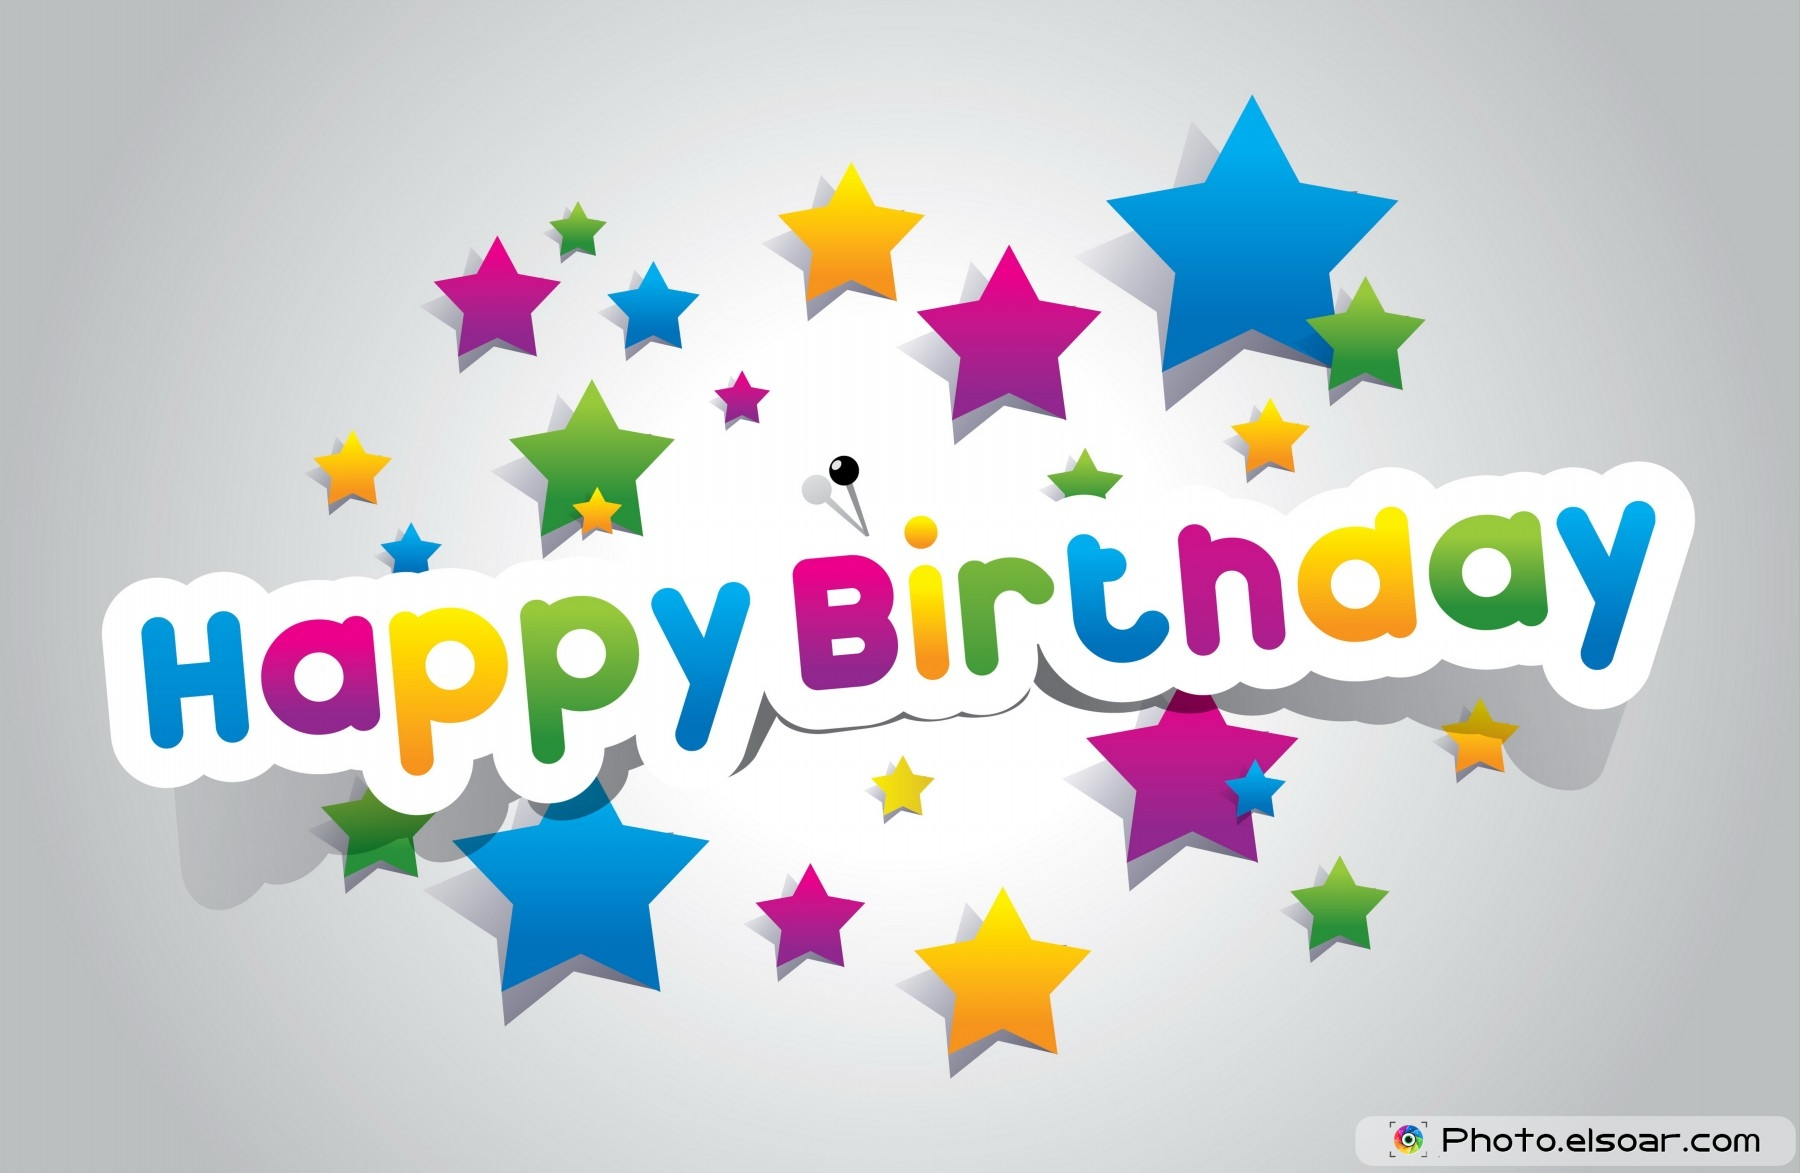 10 Unprecedented Birthday Cards FREE Elsoar – Birthday Cards Backgrounds